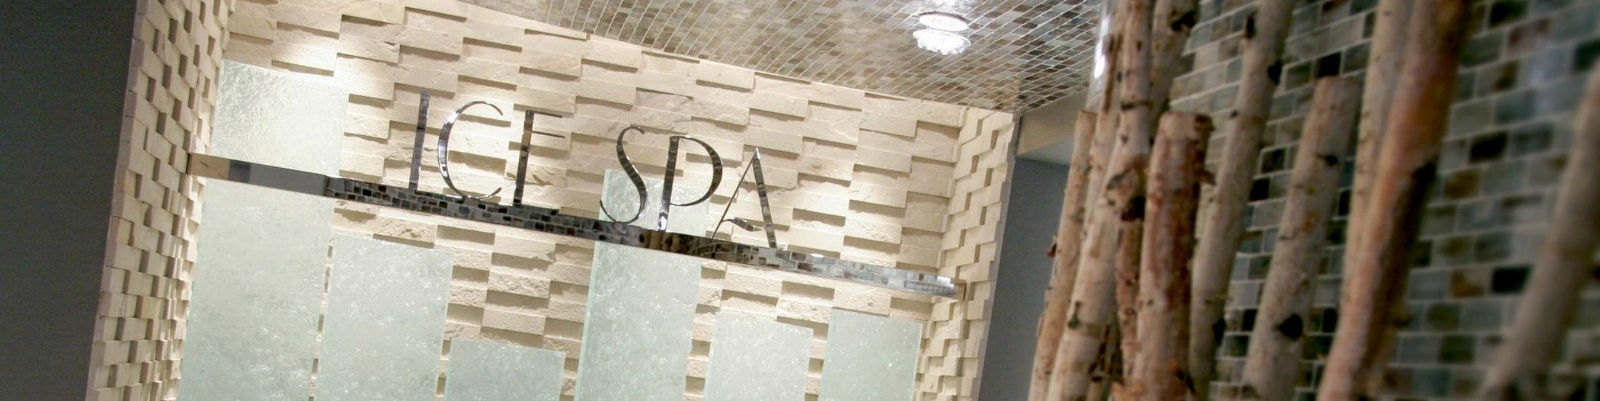 Anchorage Spa Treatments